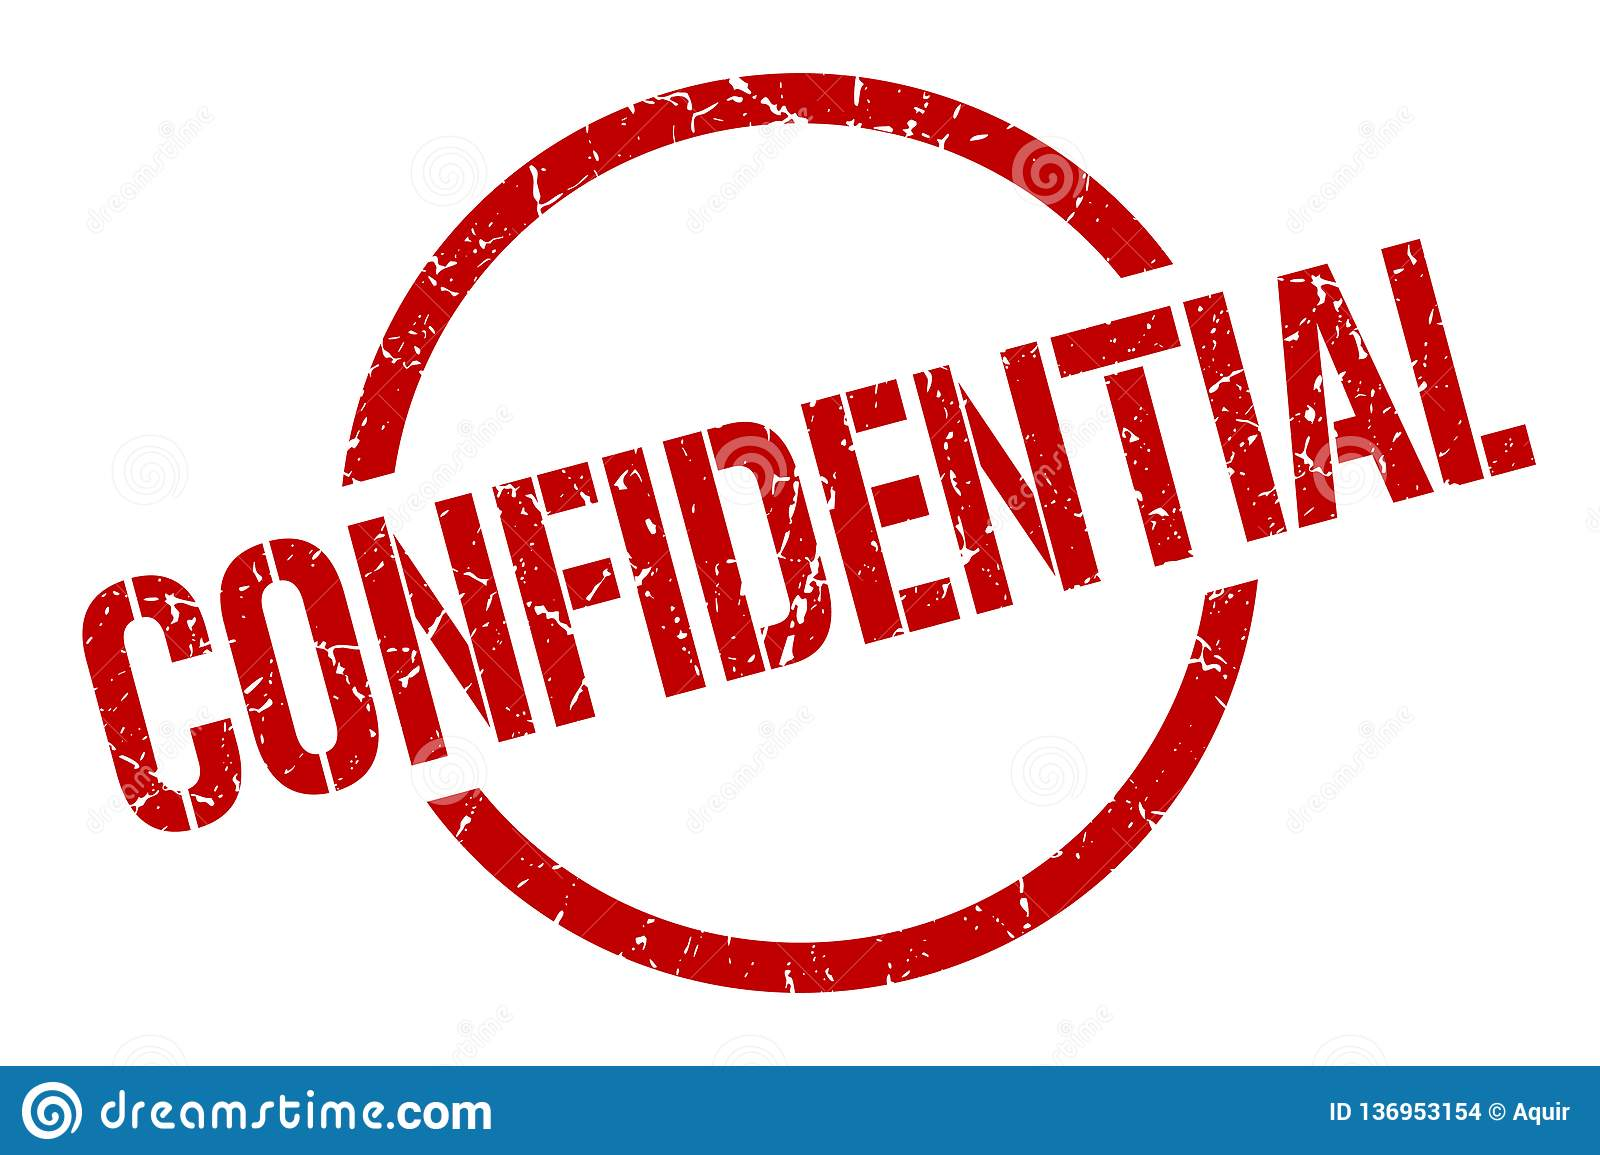 Confidential stamp stock vector. Illustration of ...